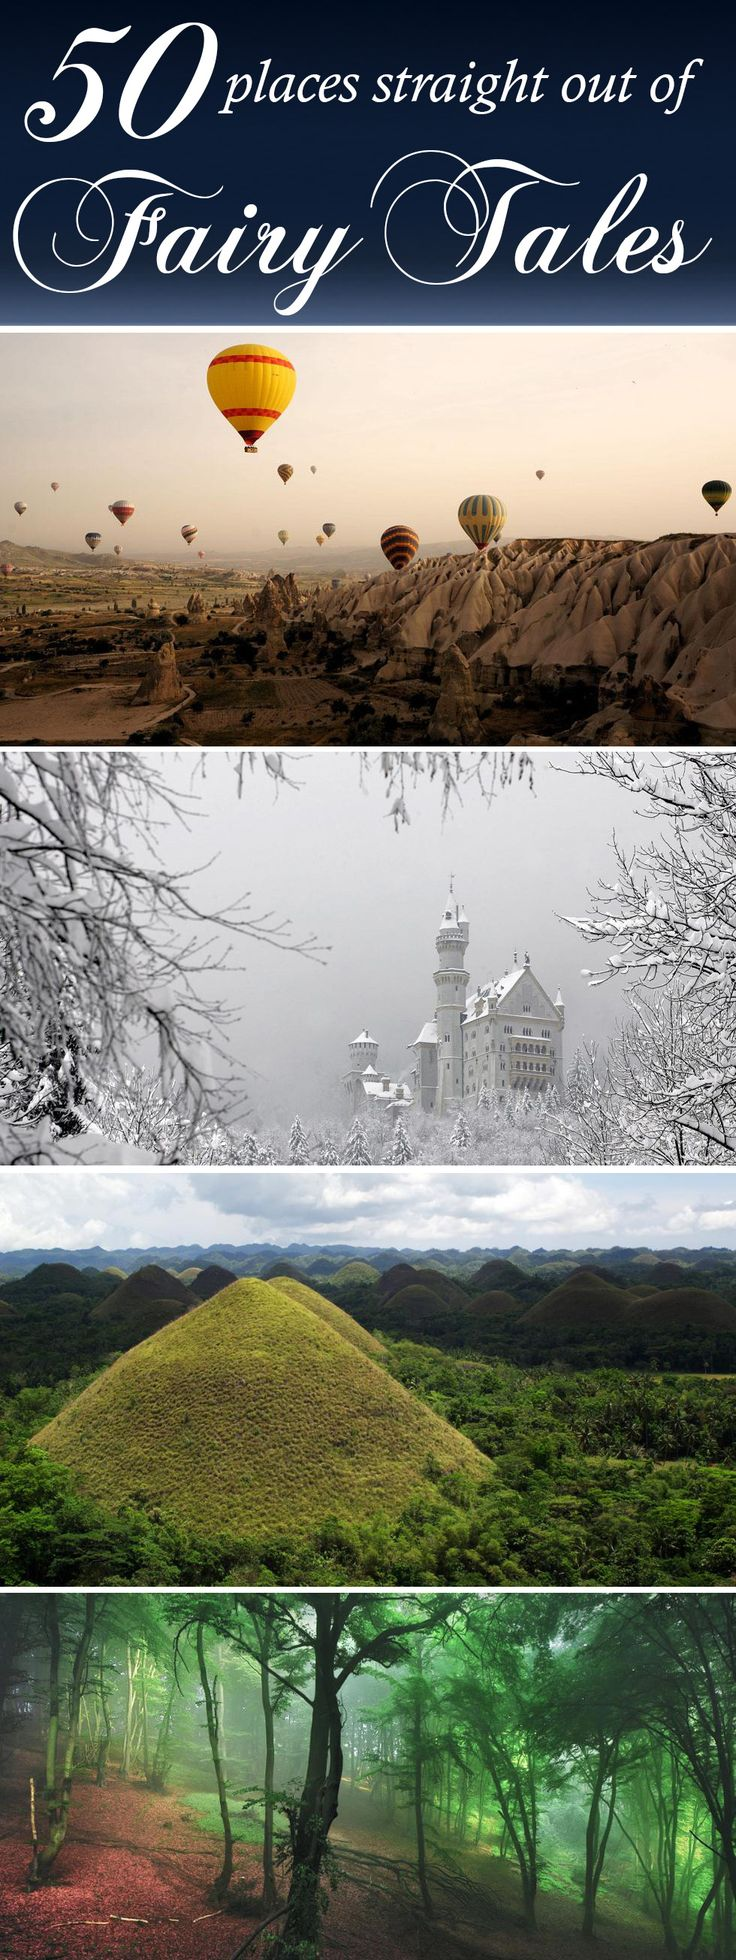 50 PLACES STRAIGHT OUT OF FAIRY TALES